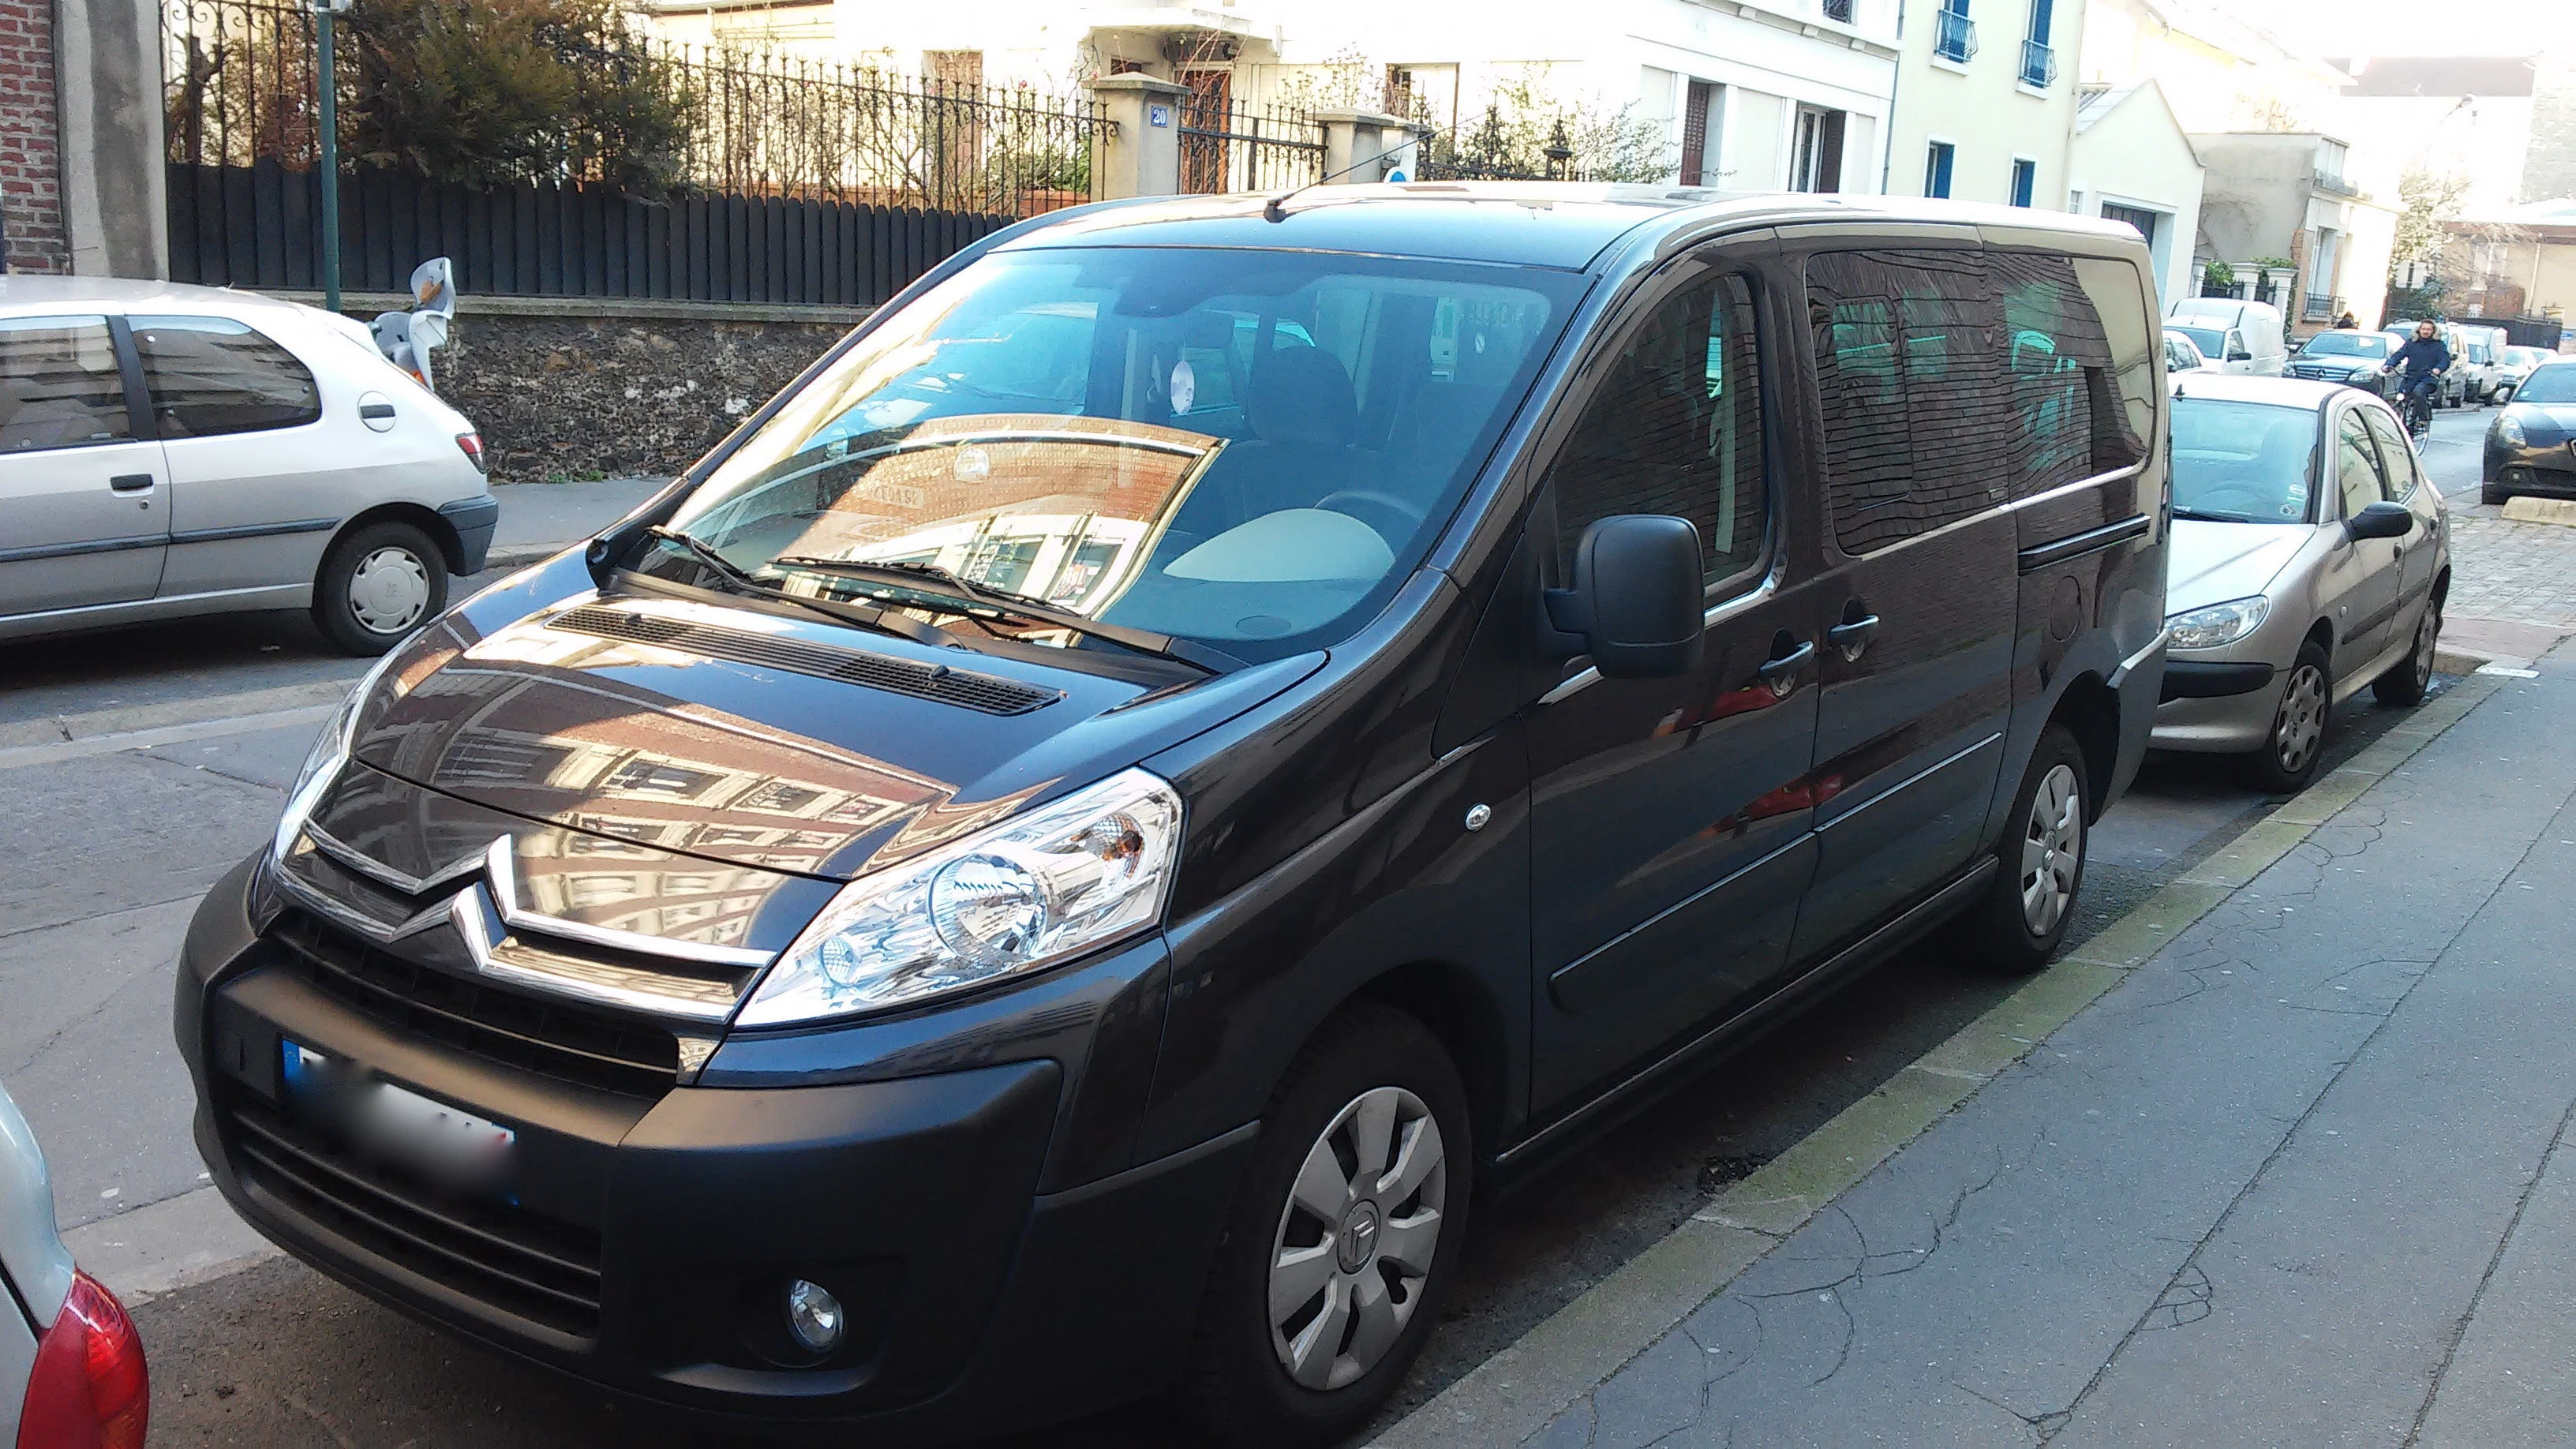 Citroen Jumpy 8 places Long clim mp3 Régulateur de vitesse, 2011, Diesel, 8 places